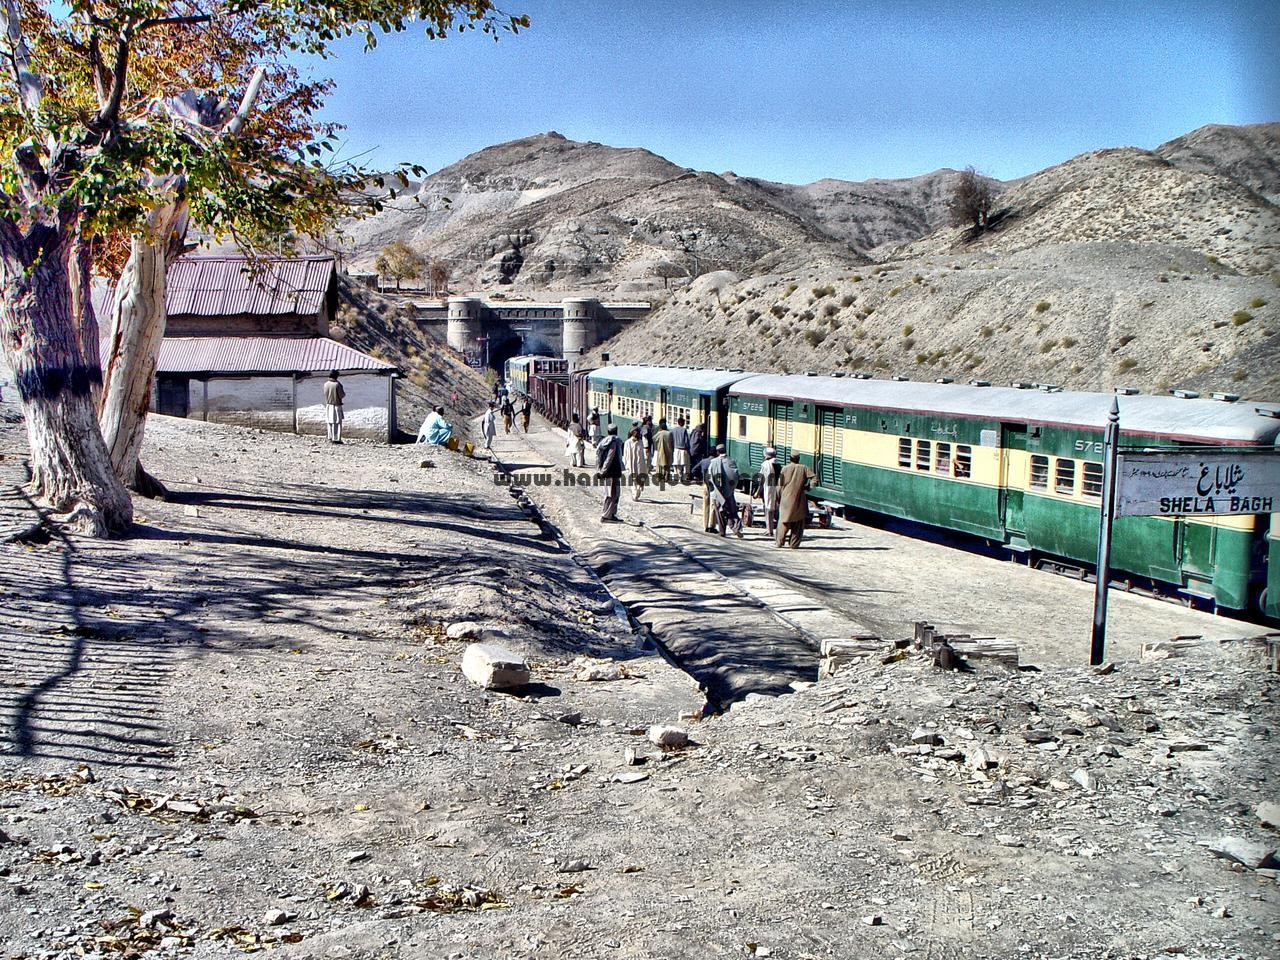 Chaman Passenger On Shela Bagh Station Hamaraquetta